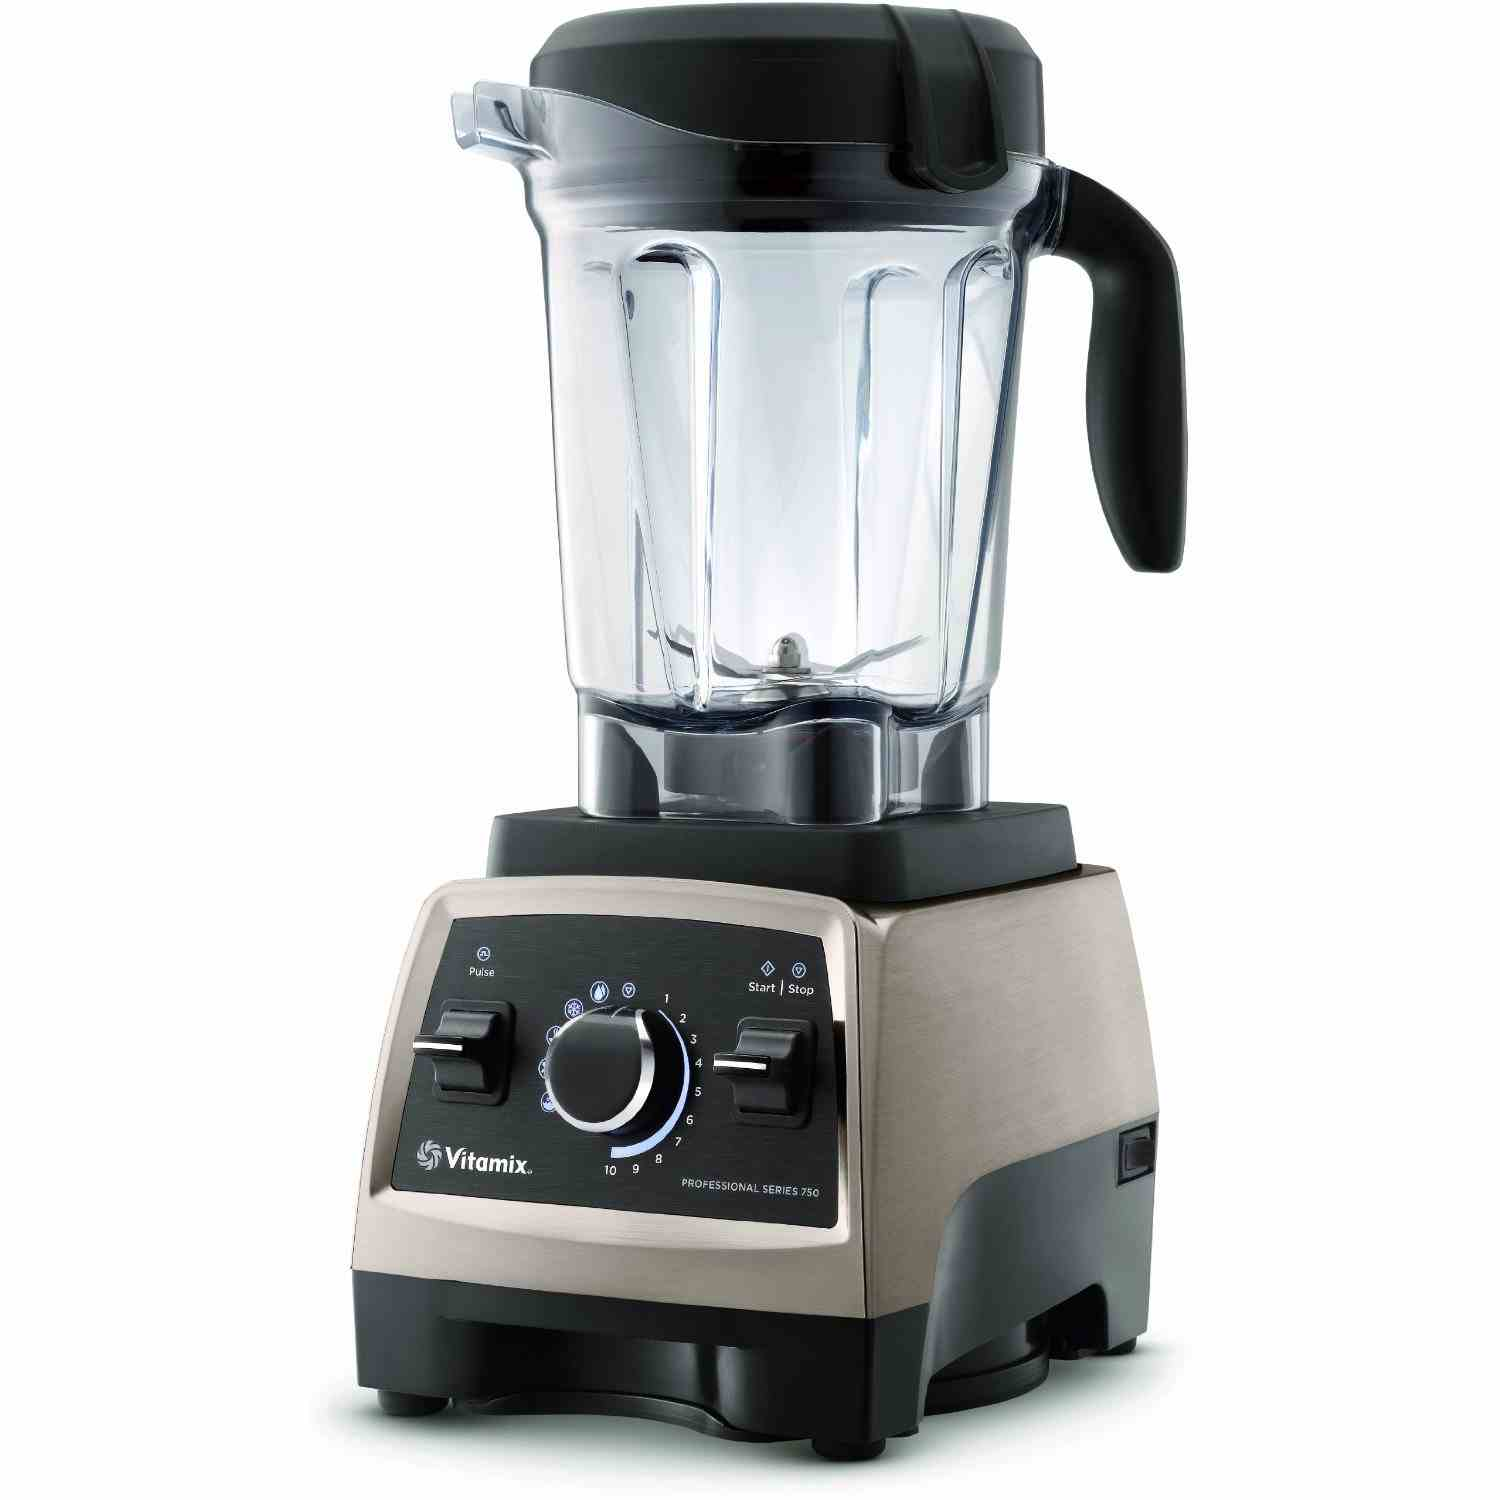 Vitamix Professional Series 750 Variable Speed Blender Heritage